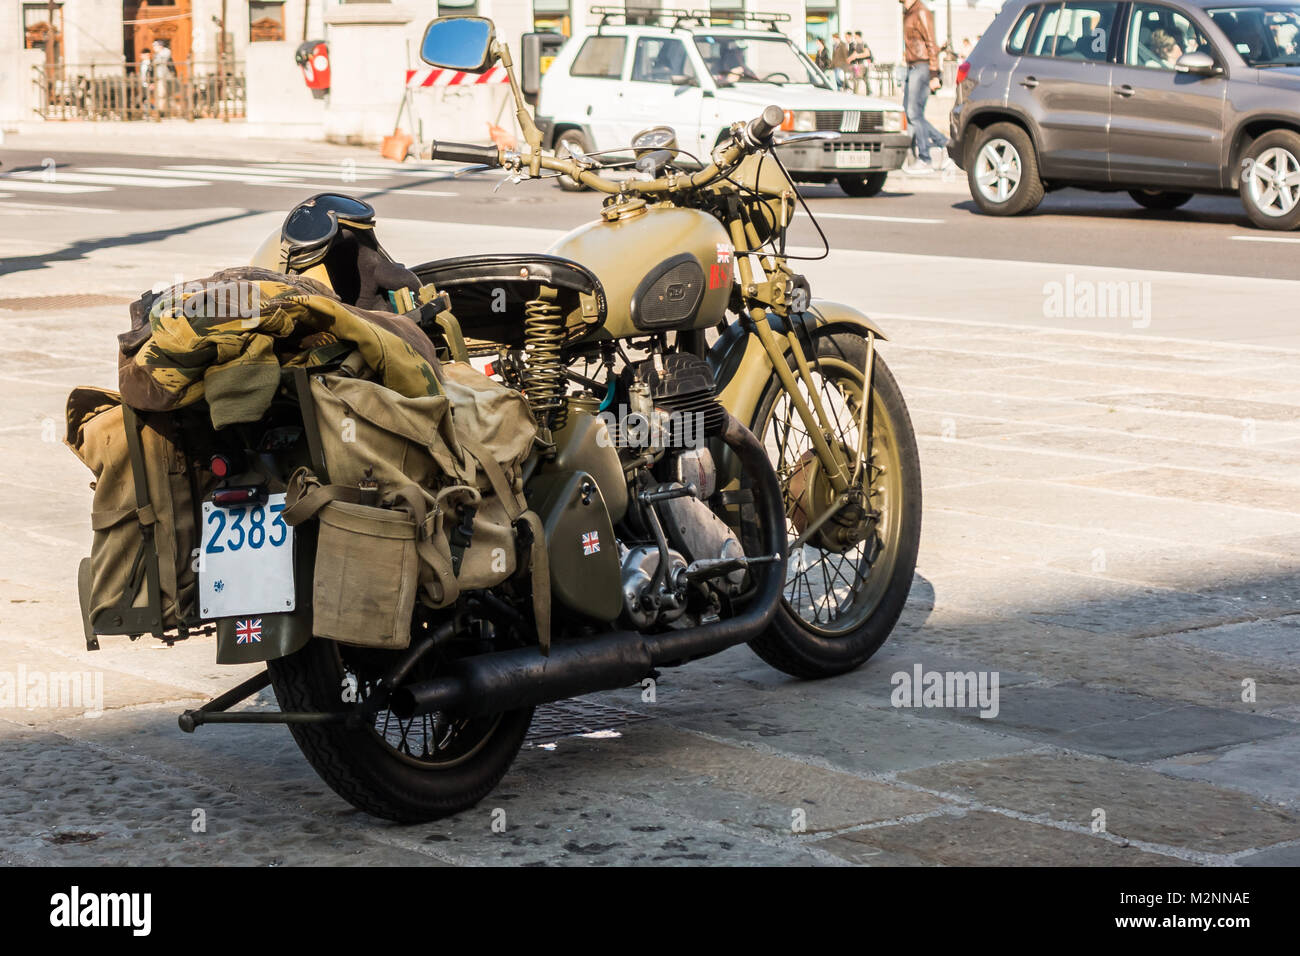 Trieste, Italy - March 31, 2017: Photo of BSA M20 motorcycles were used